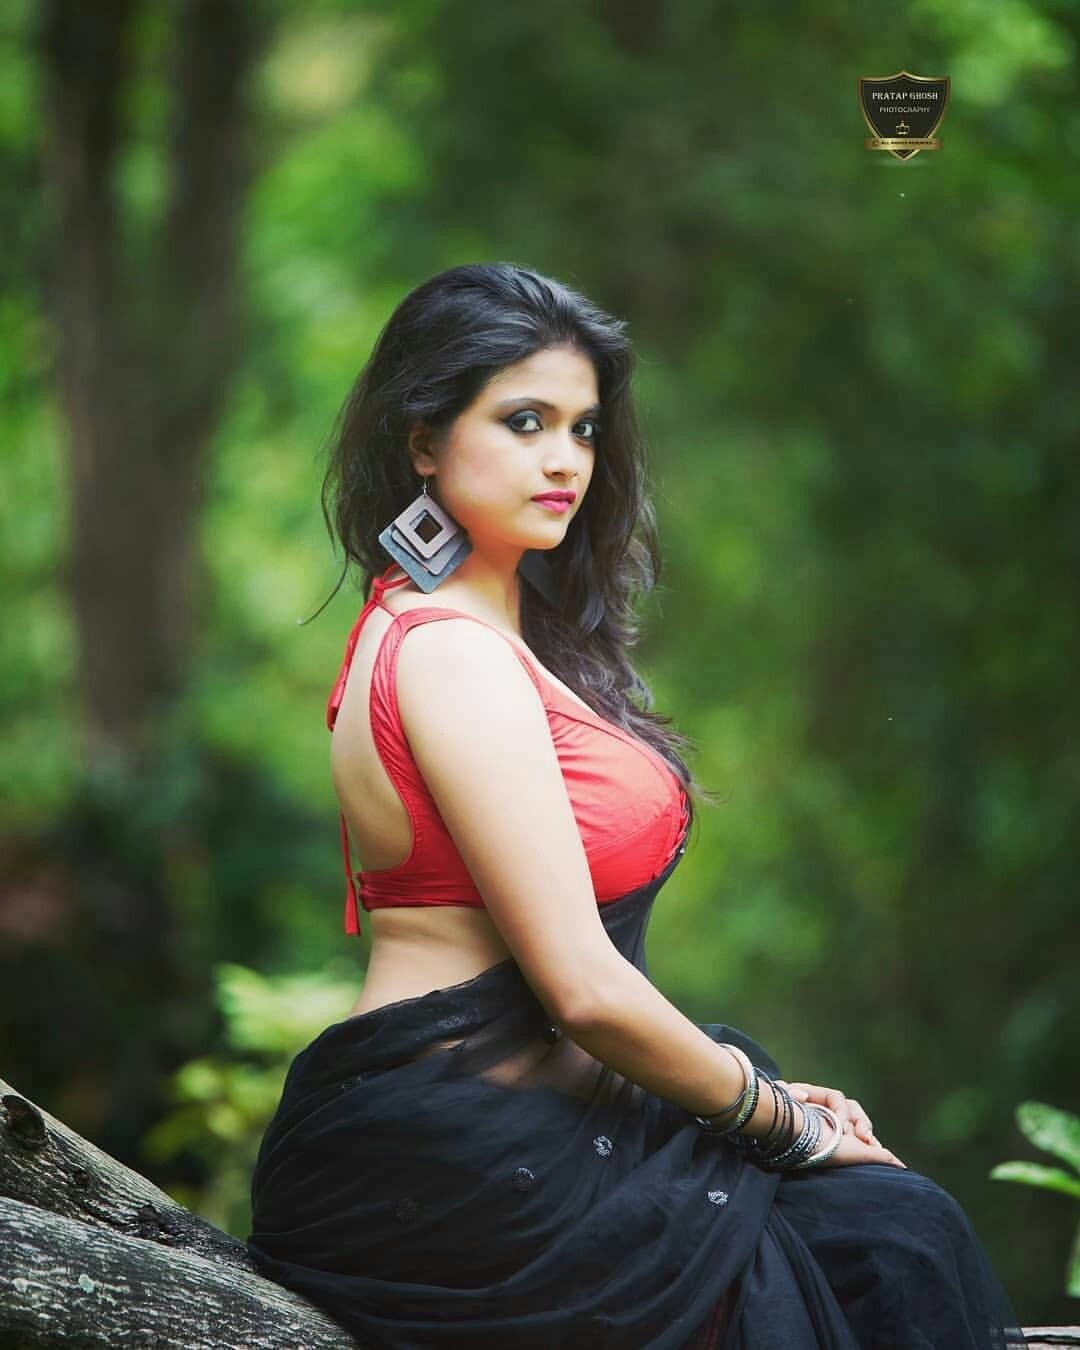 Sexy Indian Lady In Saree